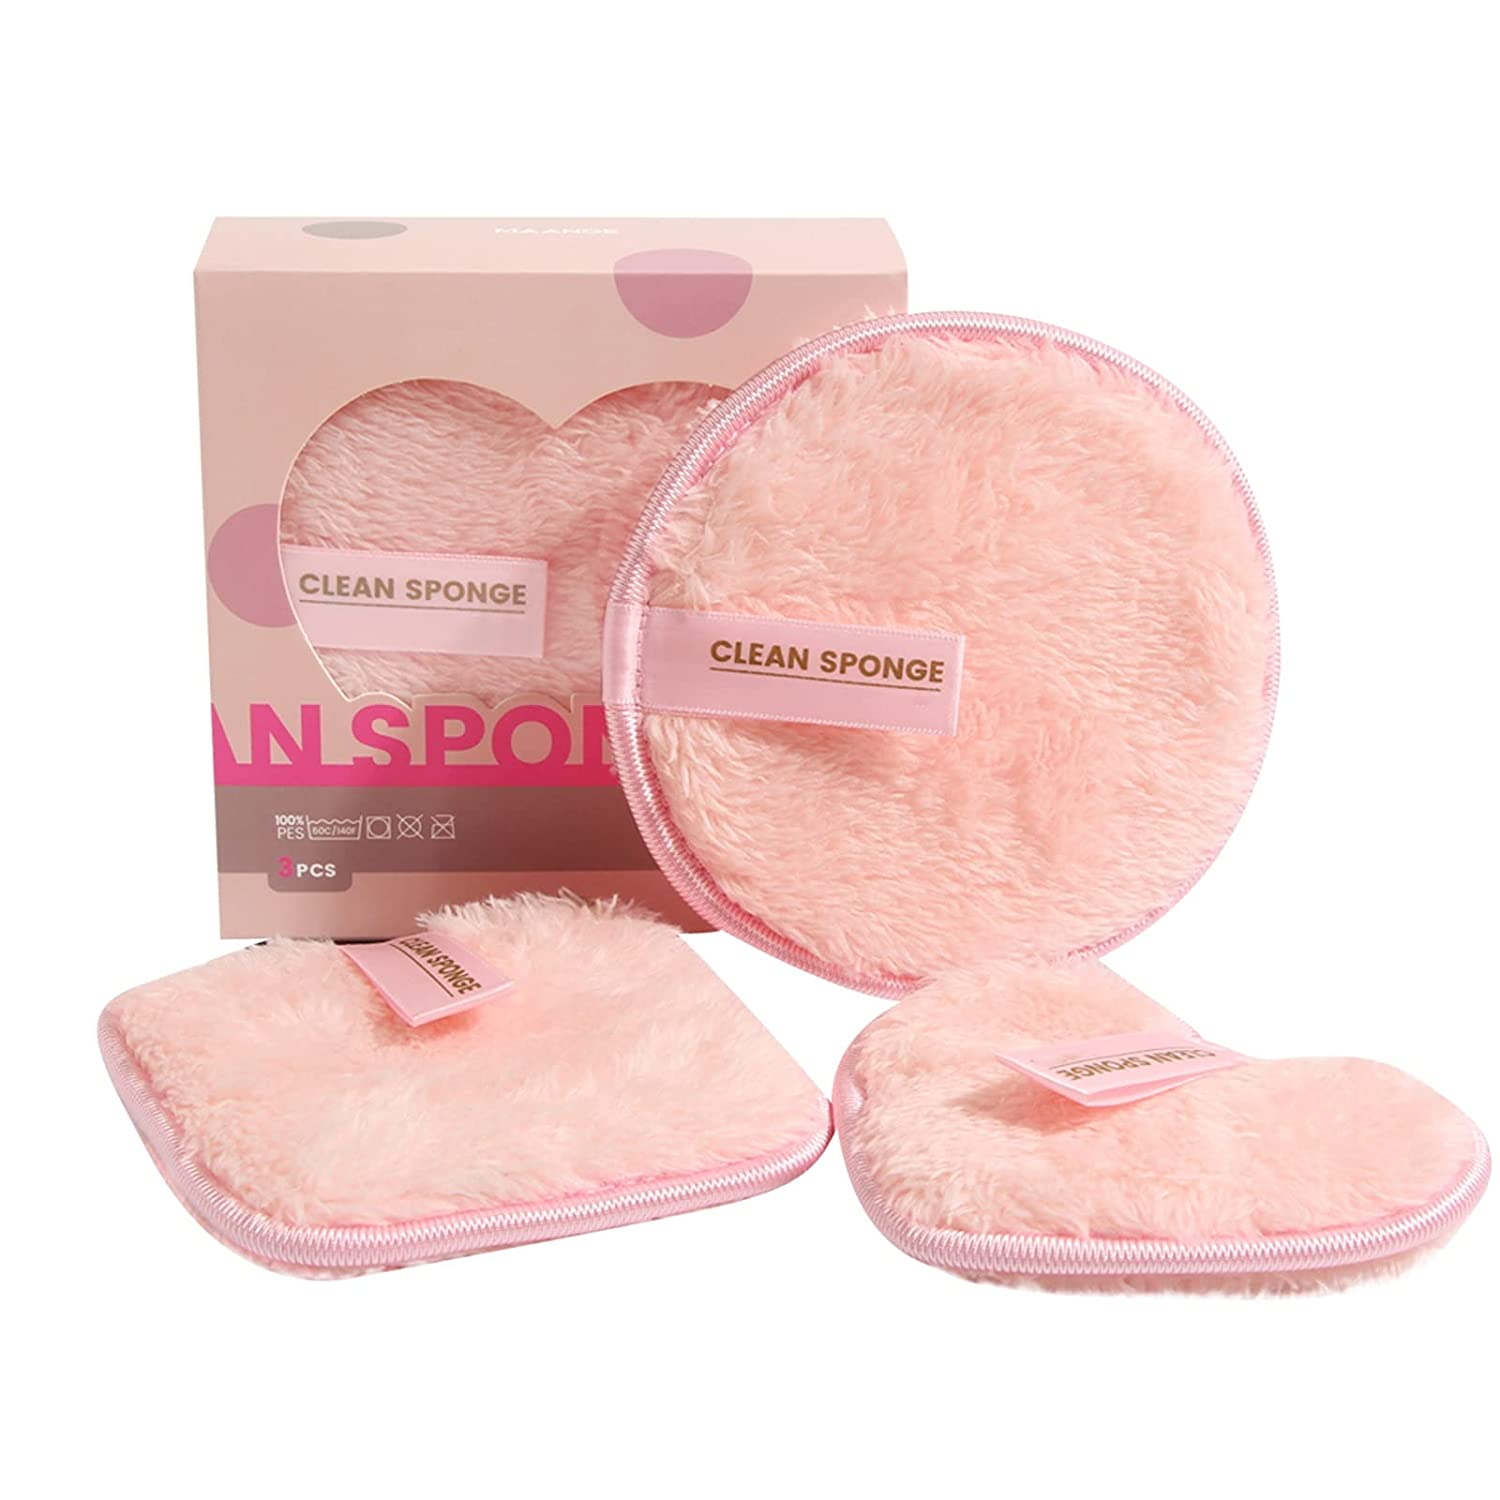 Reusable Courier shipping free shopping Makeup Remover Pads Microfiber Cotton Washable Rounds